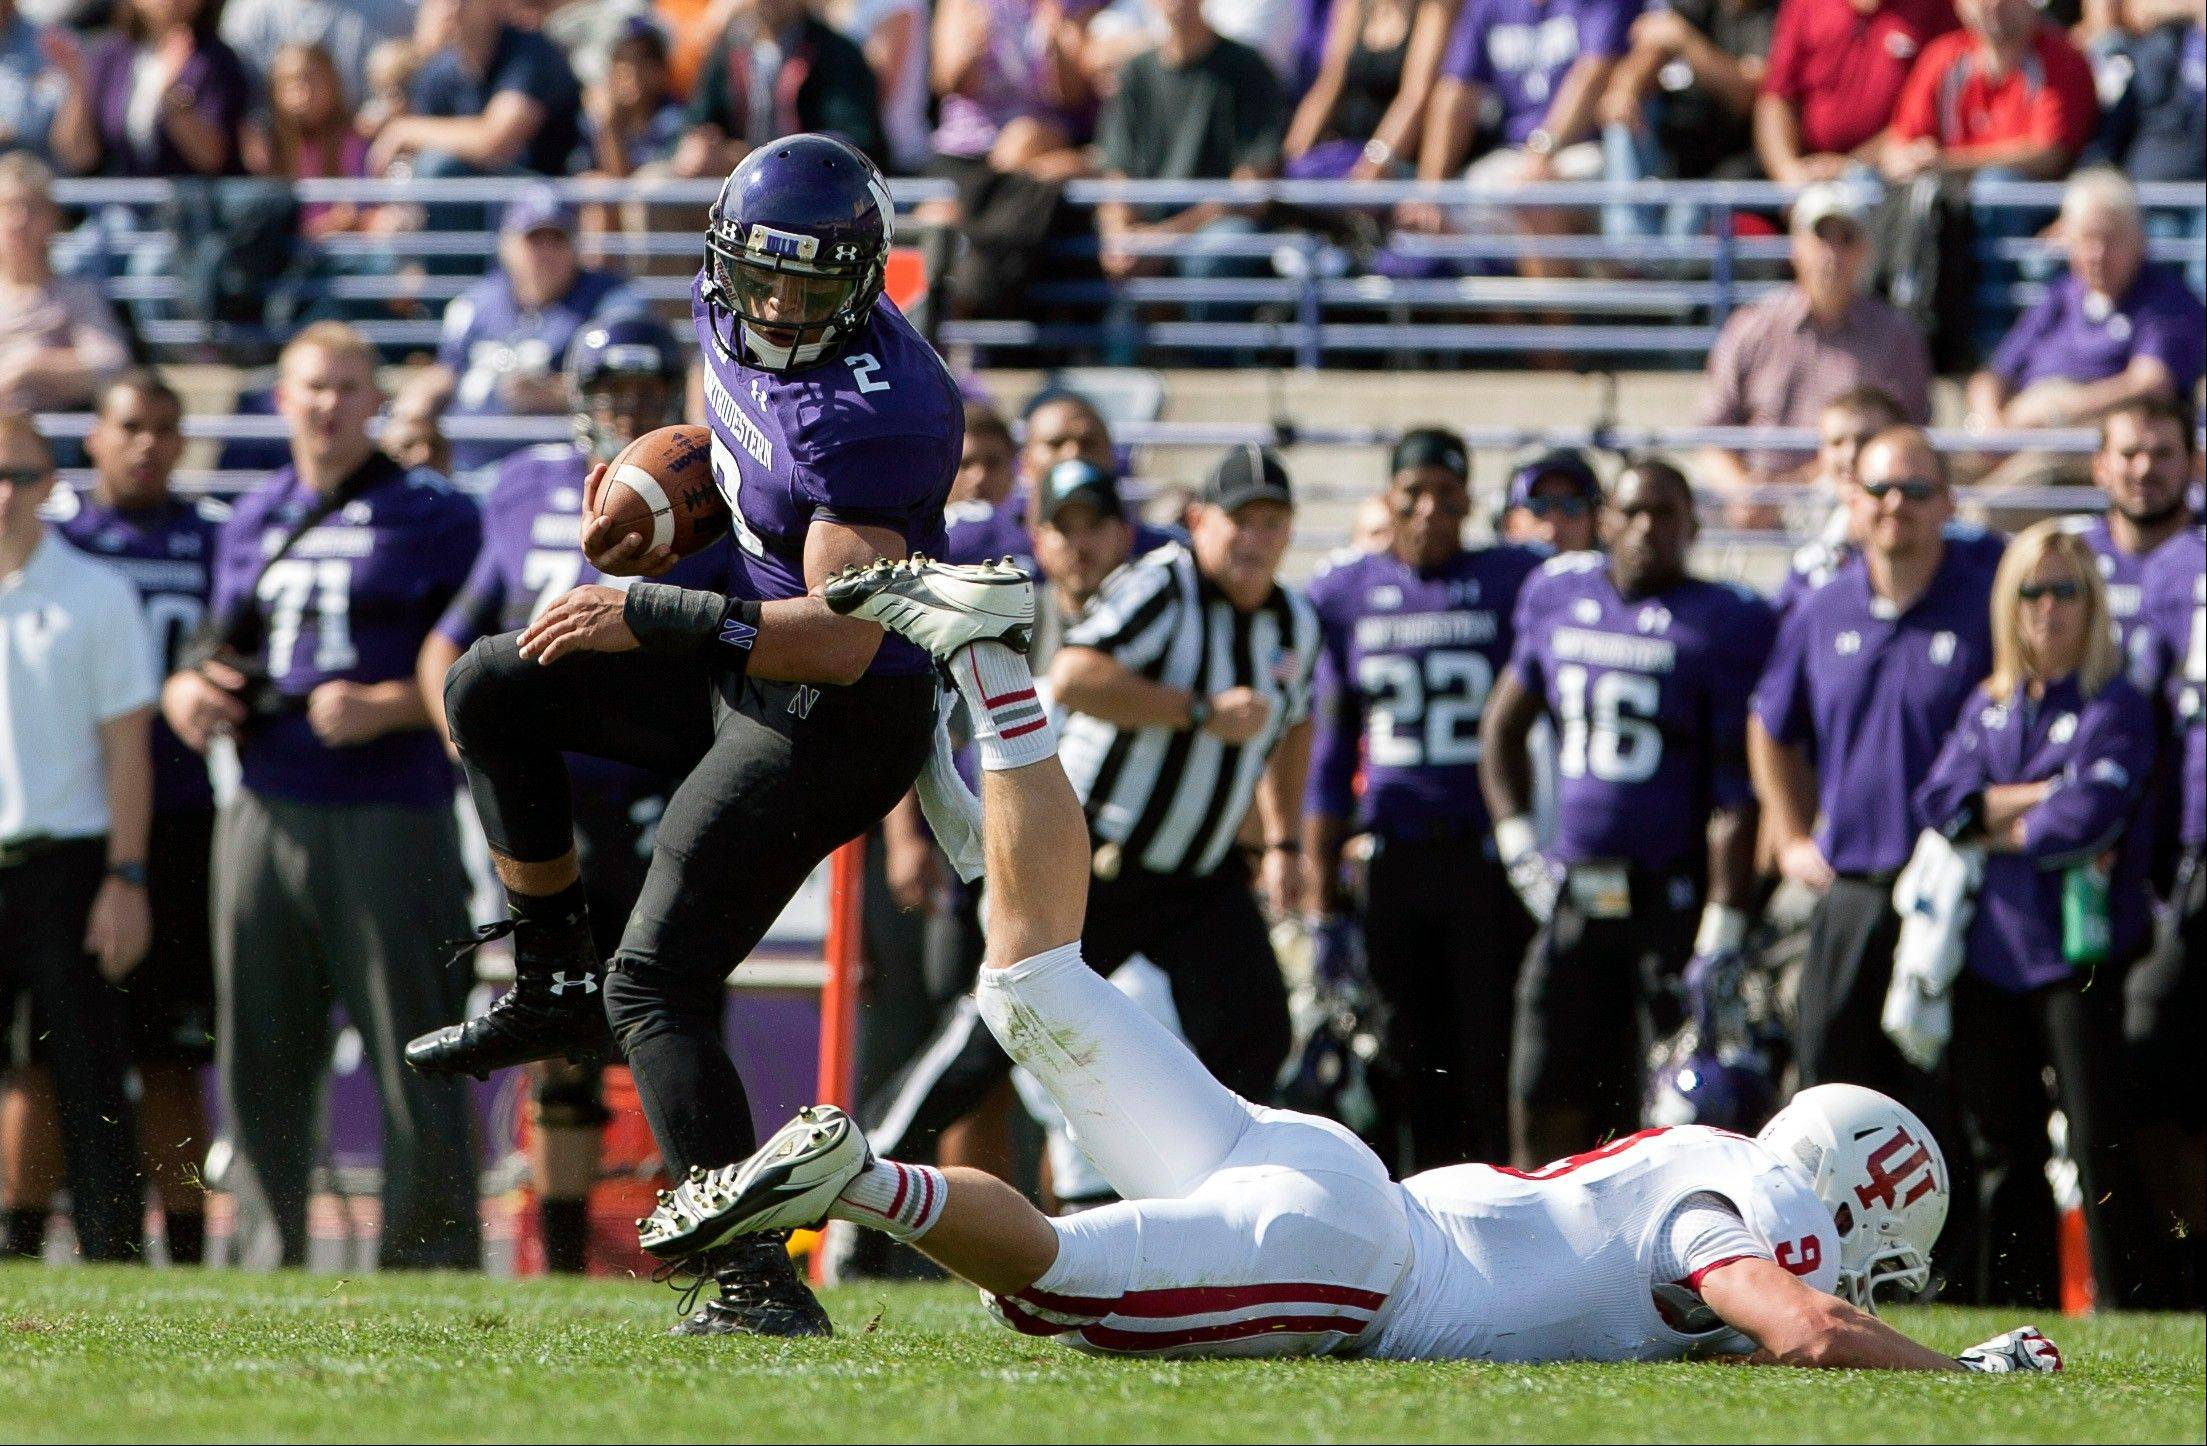 Northwestern and Kain Colter are back in the Top 25 for the first time since 2008, the Wildcats are off to their third 5-0 start in the last five years.